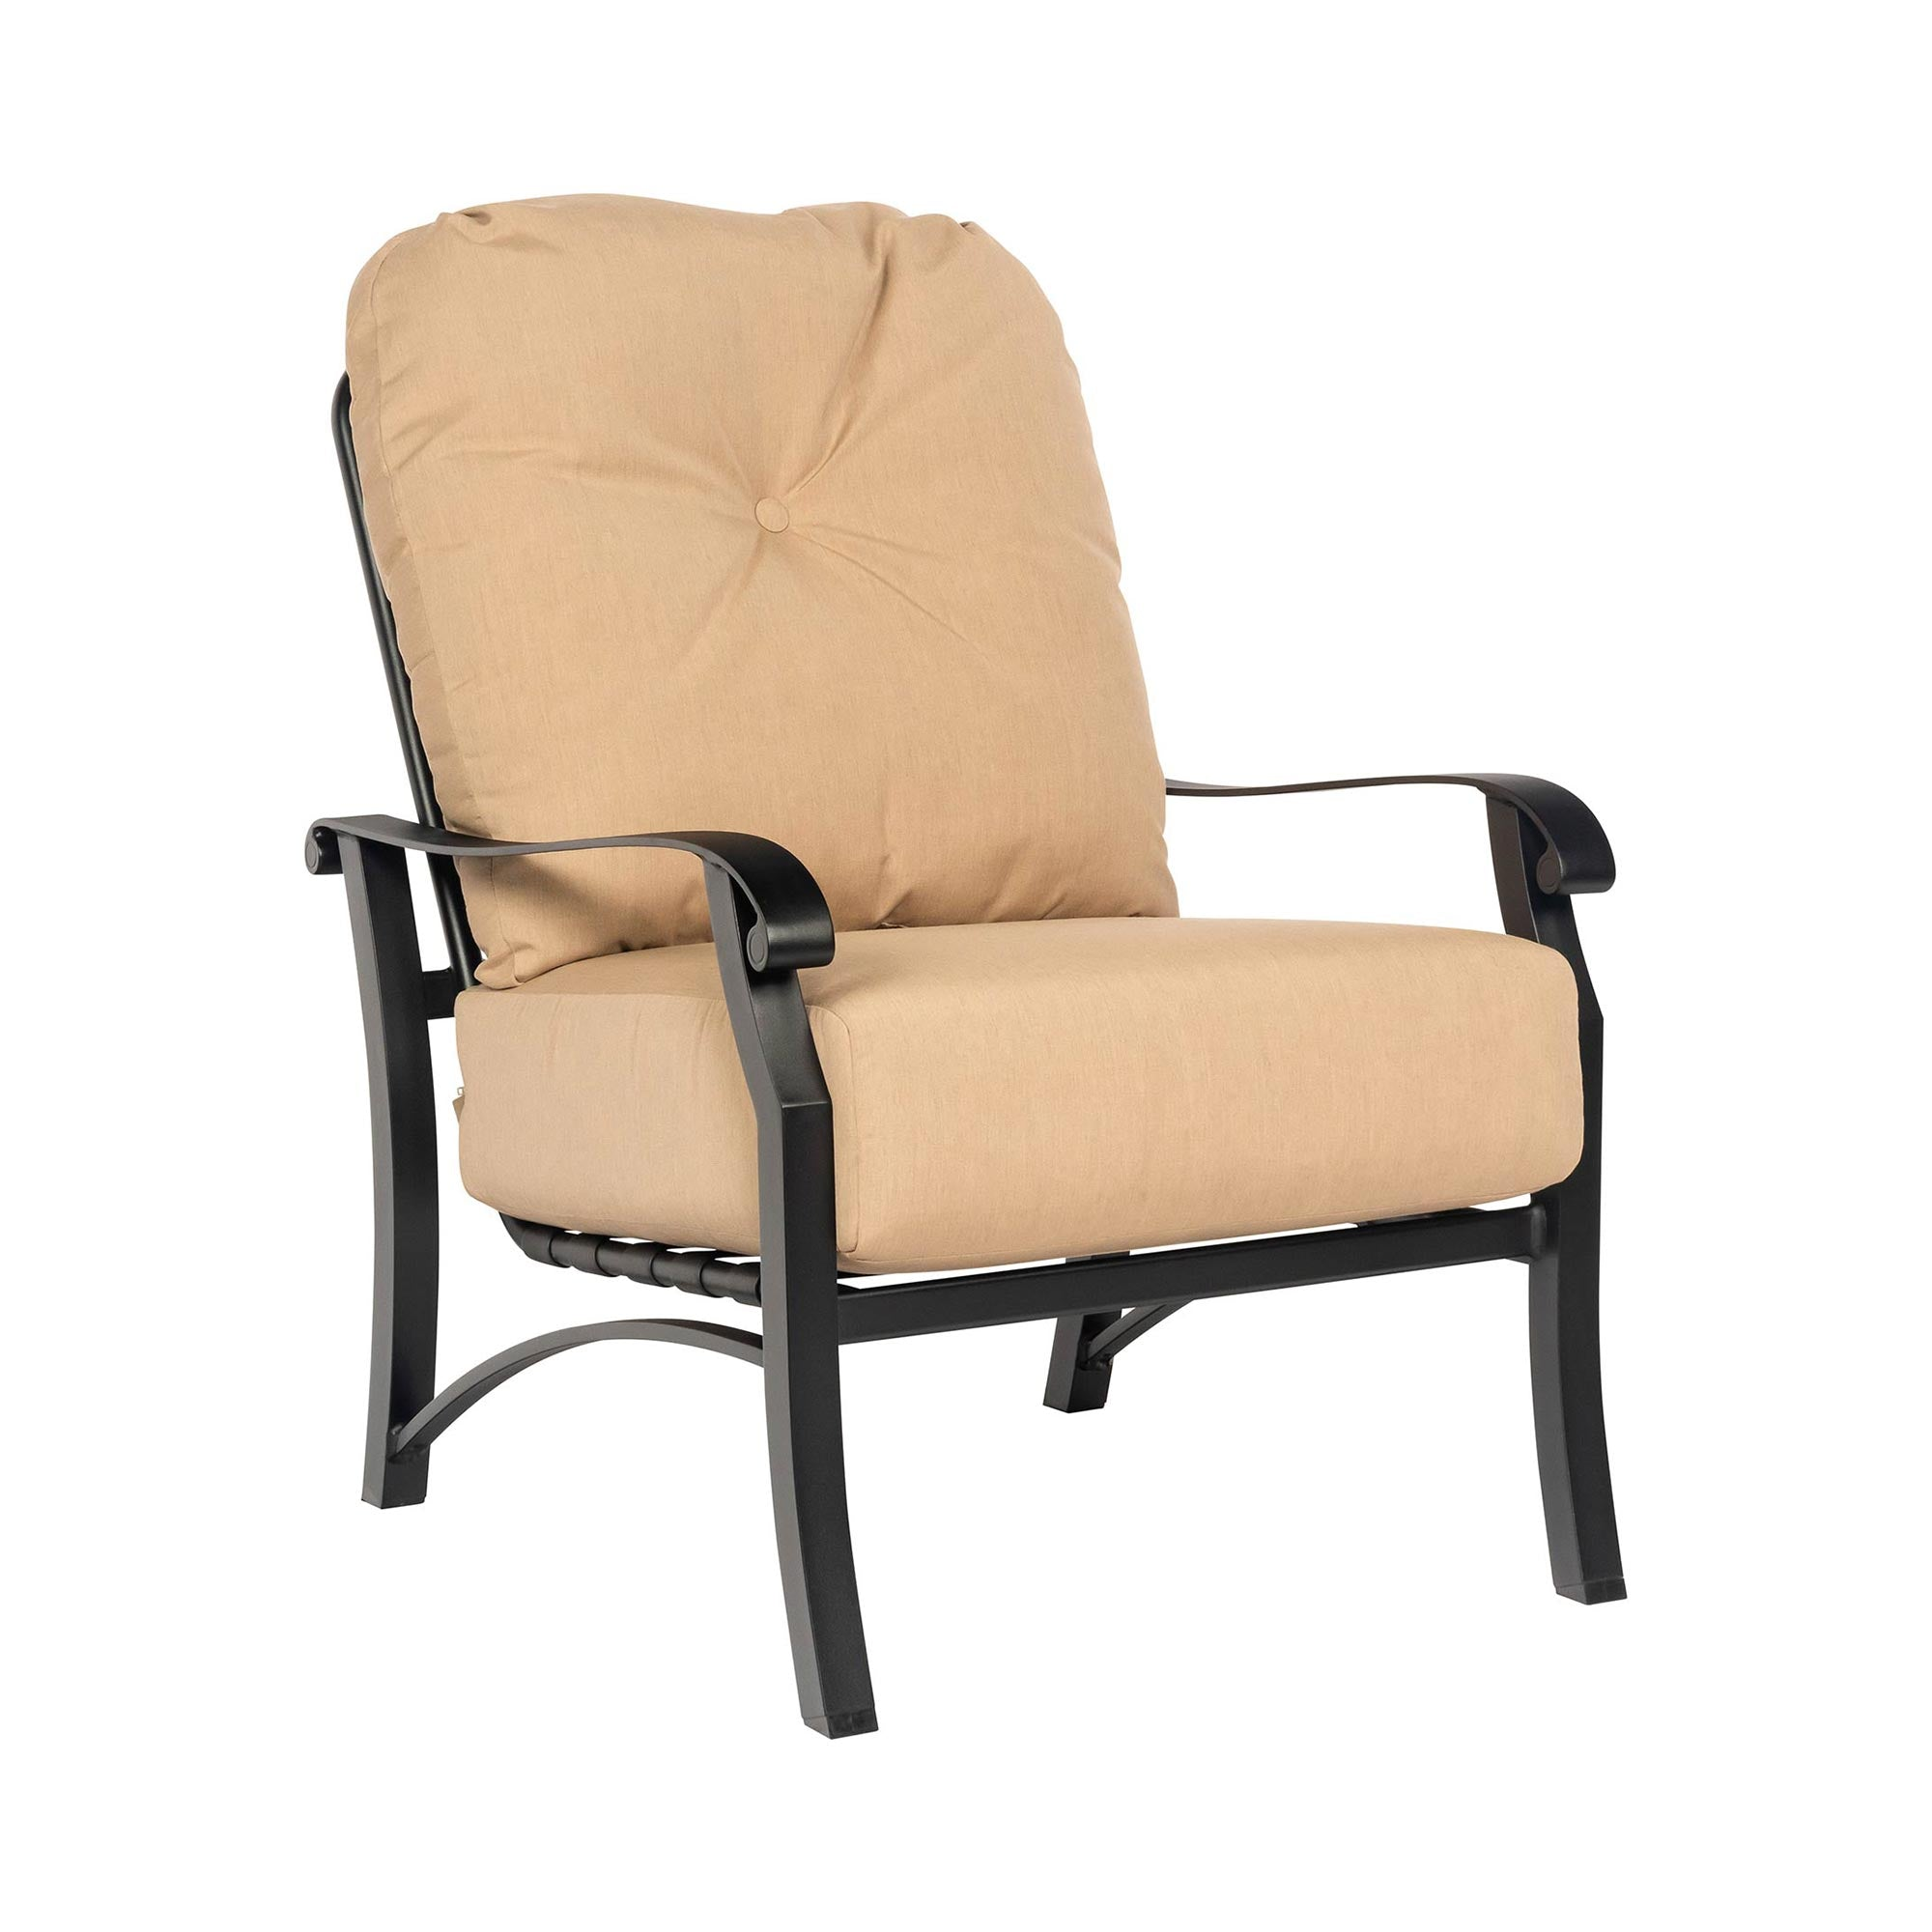 Cortland Cushion Lounge Chair- Item 4Z0406